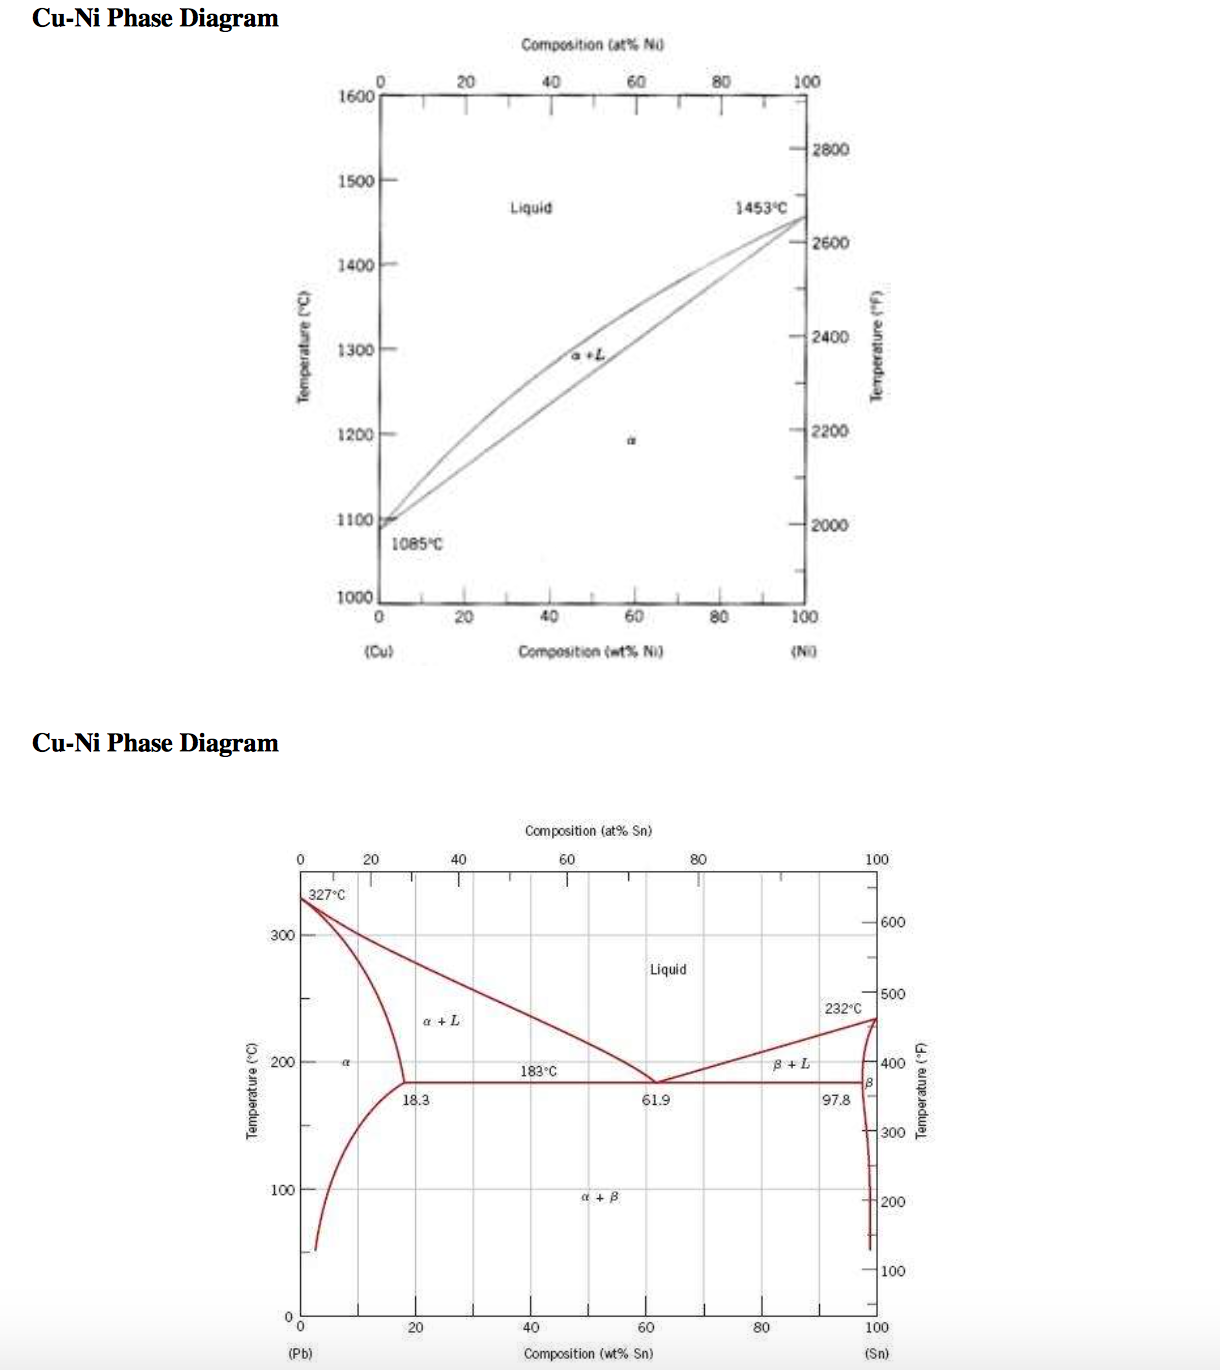 Solved cu ni phase diagram cu ni phase diagram 3 a 65 wt image for cu ni phase diagram cu ni phase diagram 3 ccuart Images